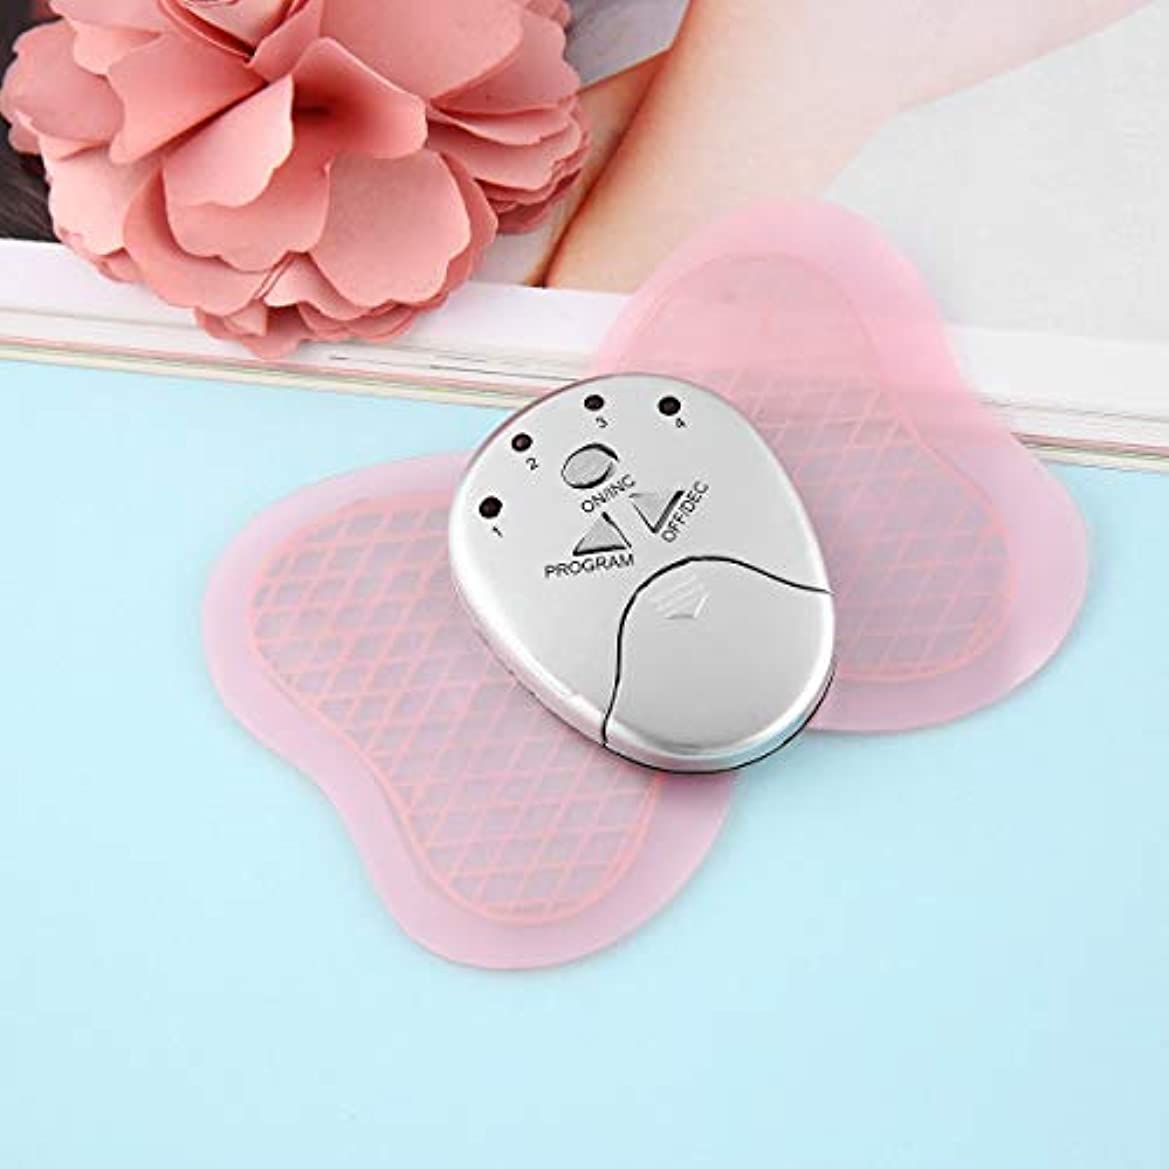 吹きさらし壊滅的な議題Mini Electronic Body Muscle Butterfly Massager Slimming Vibration Fitness Professional Health Care Two Colors...